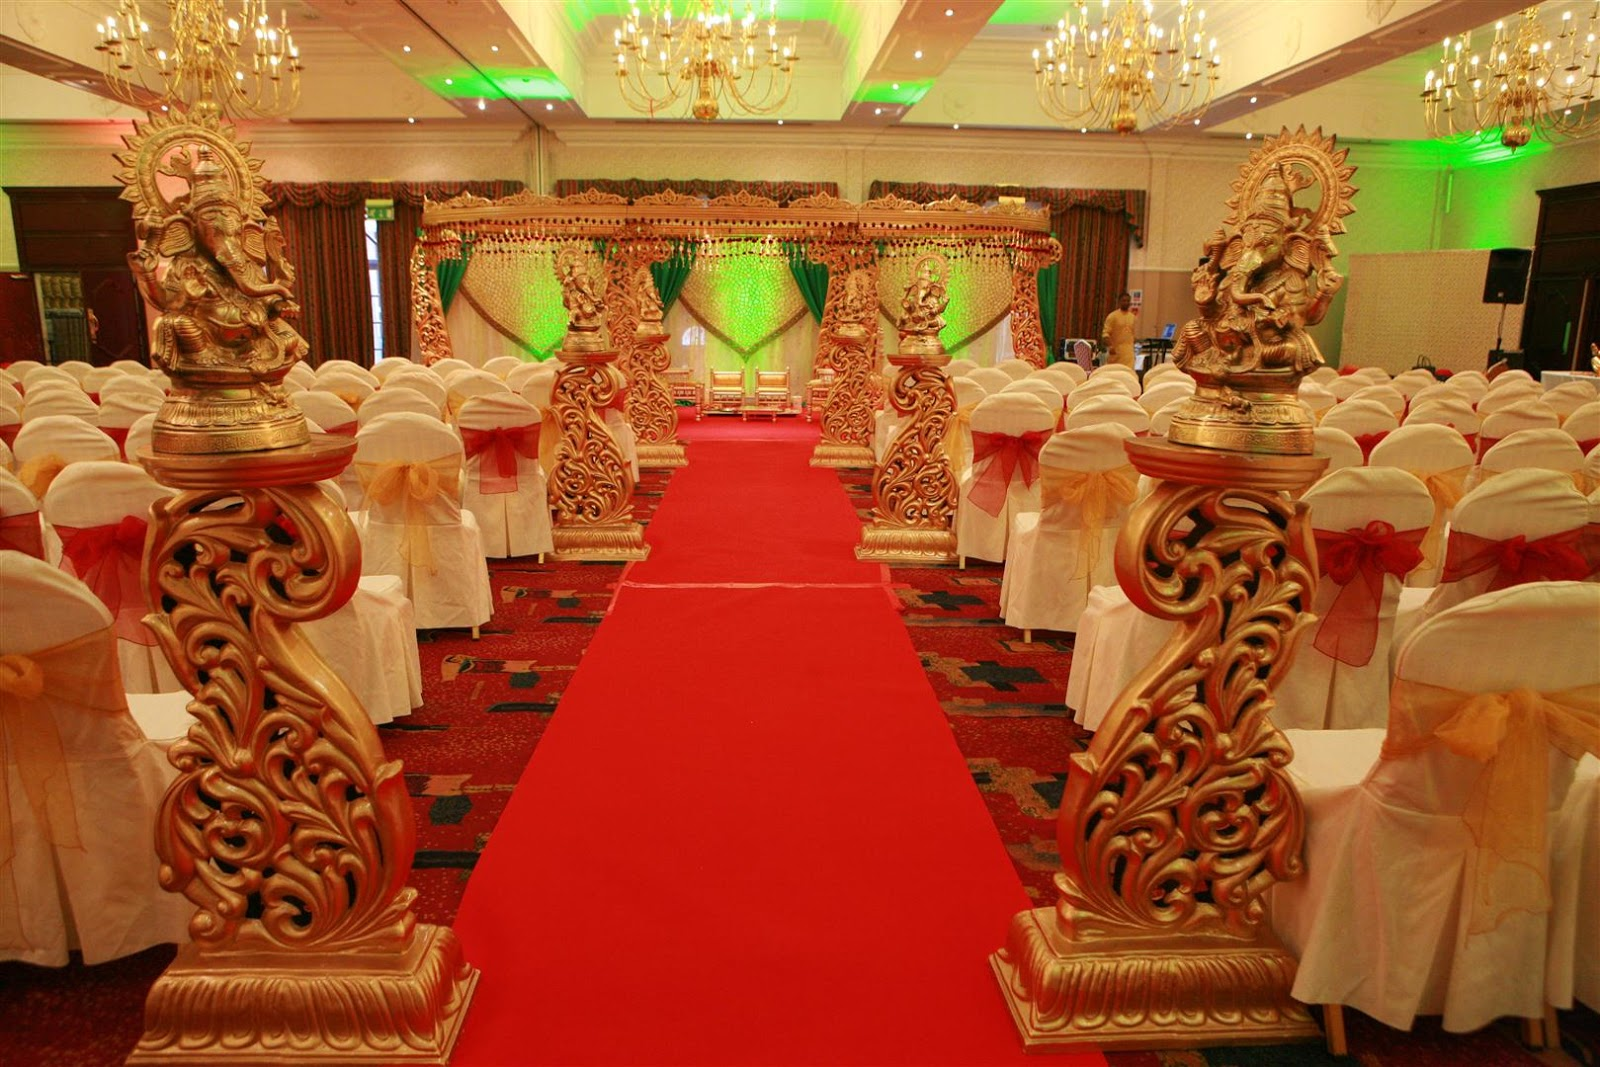 Royal wedding decorations romantic decoration asian wedding decorations mazs blog our favourite asian wedding decorations in coventry junglespirit